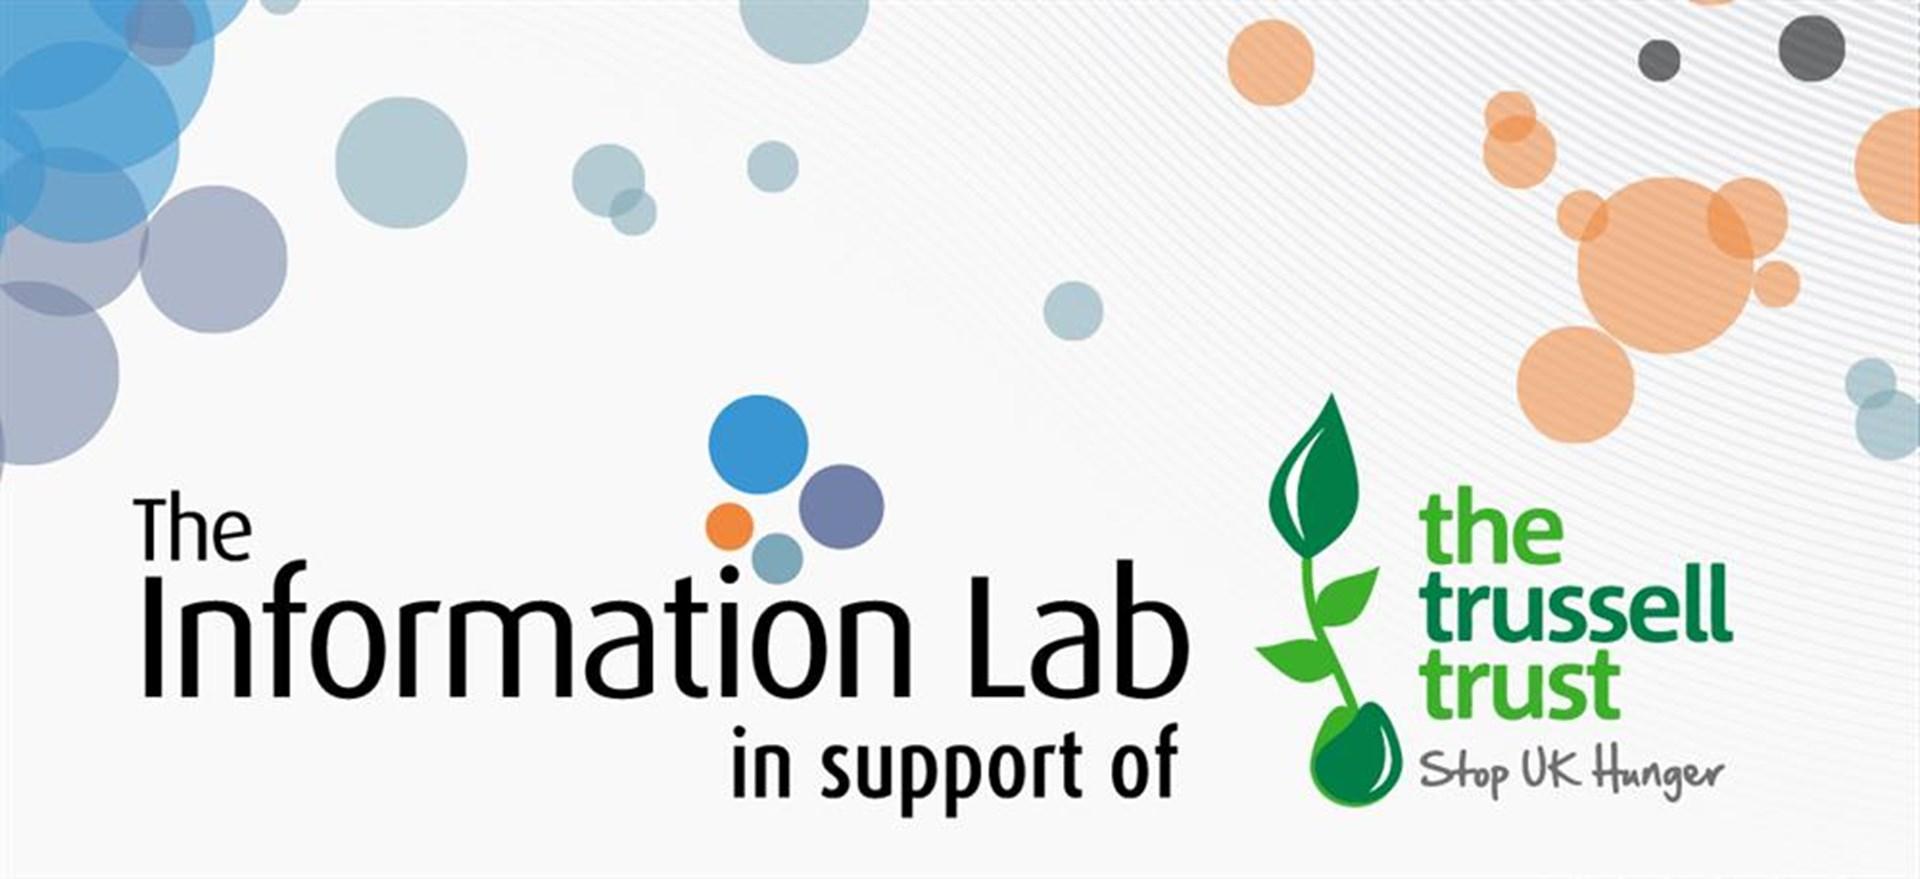 The Information Lab is fundraising for The Trussell Trust